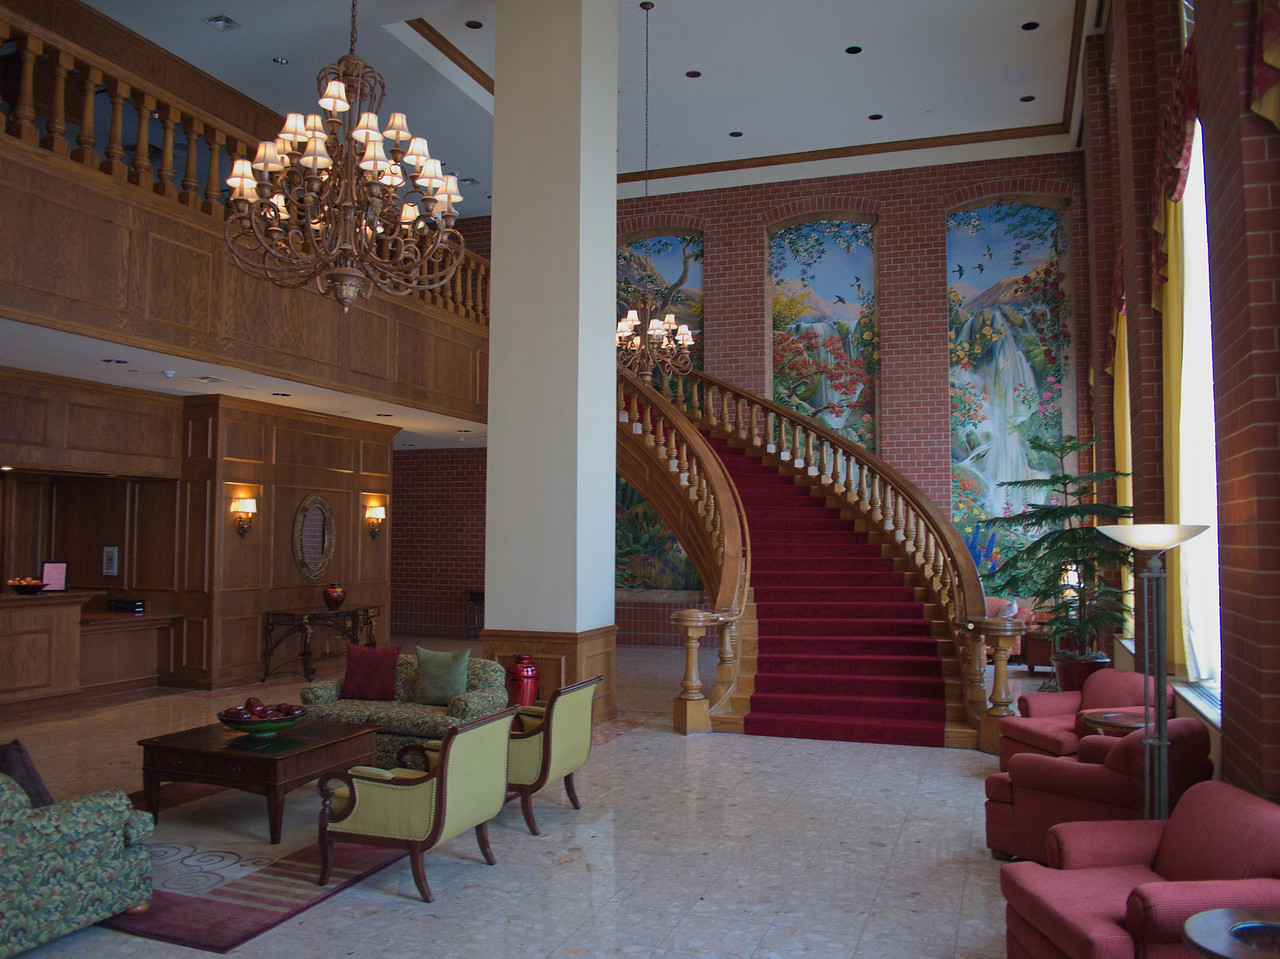 Lobby of the Cornhusker Hotel